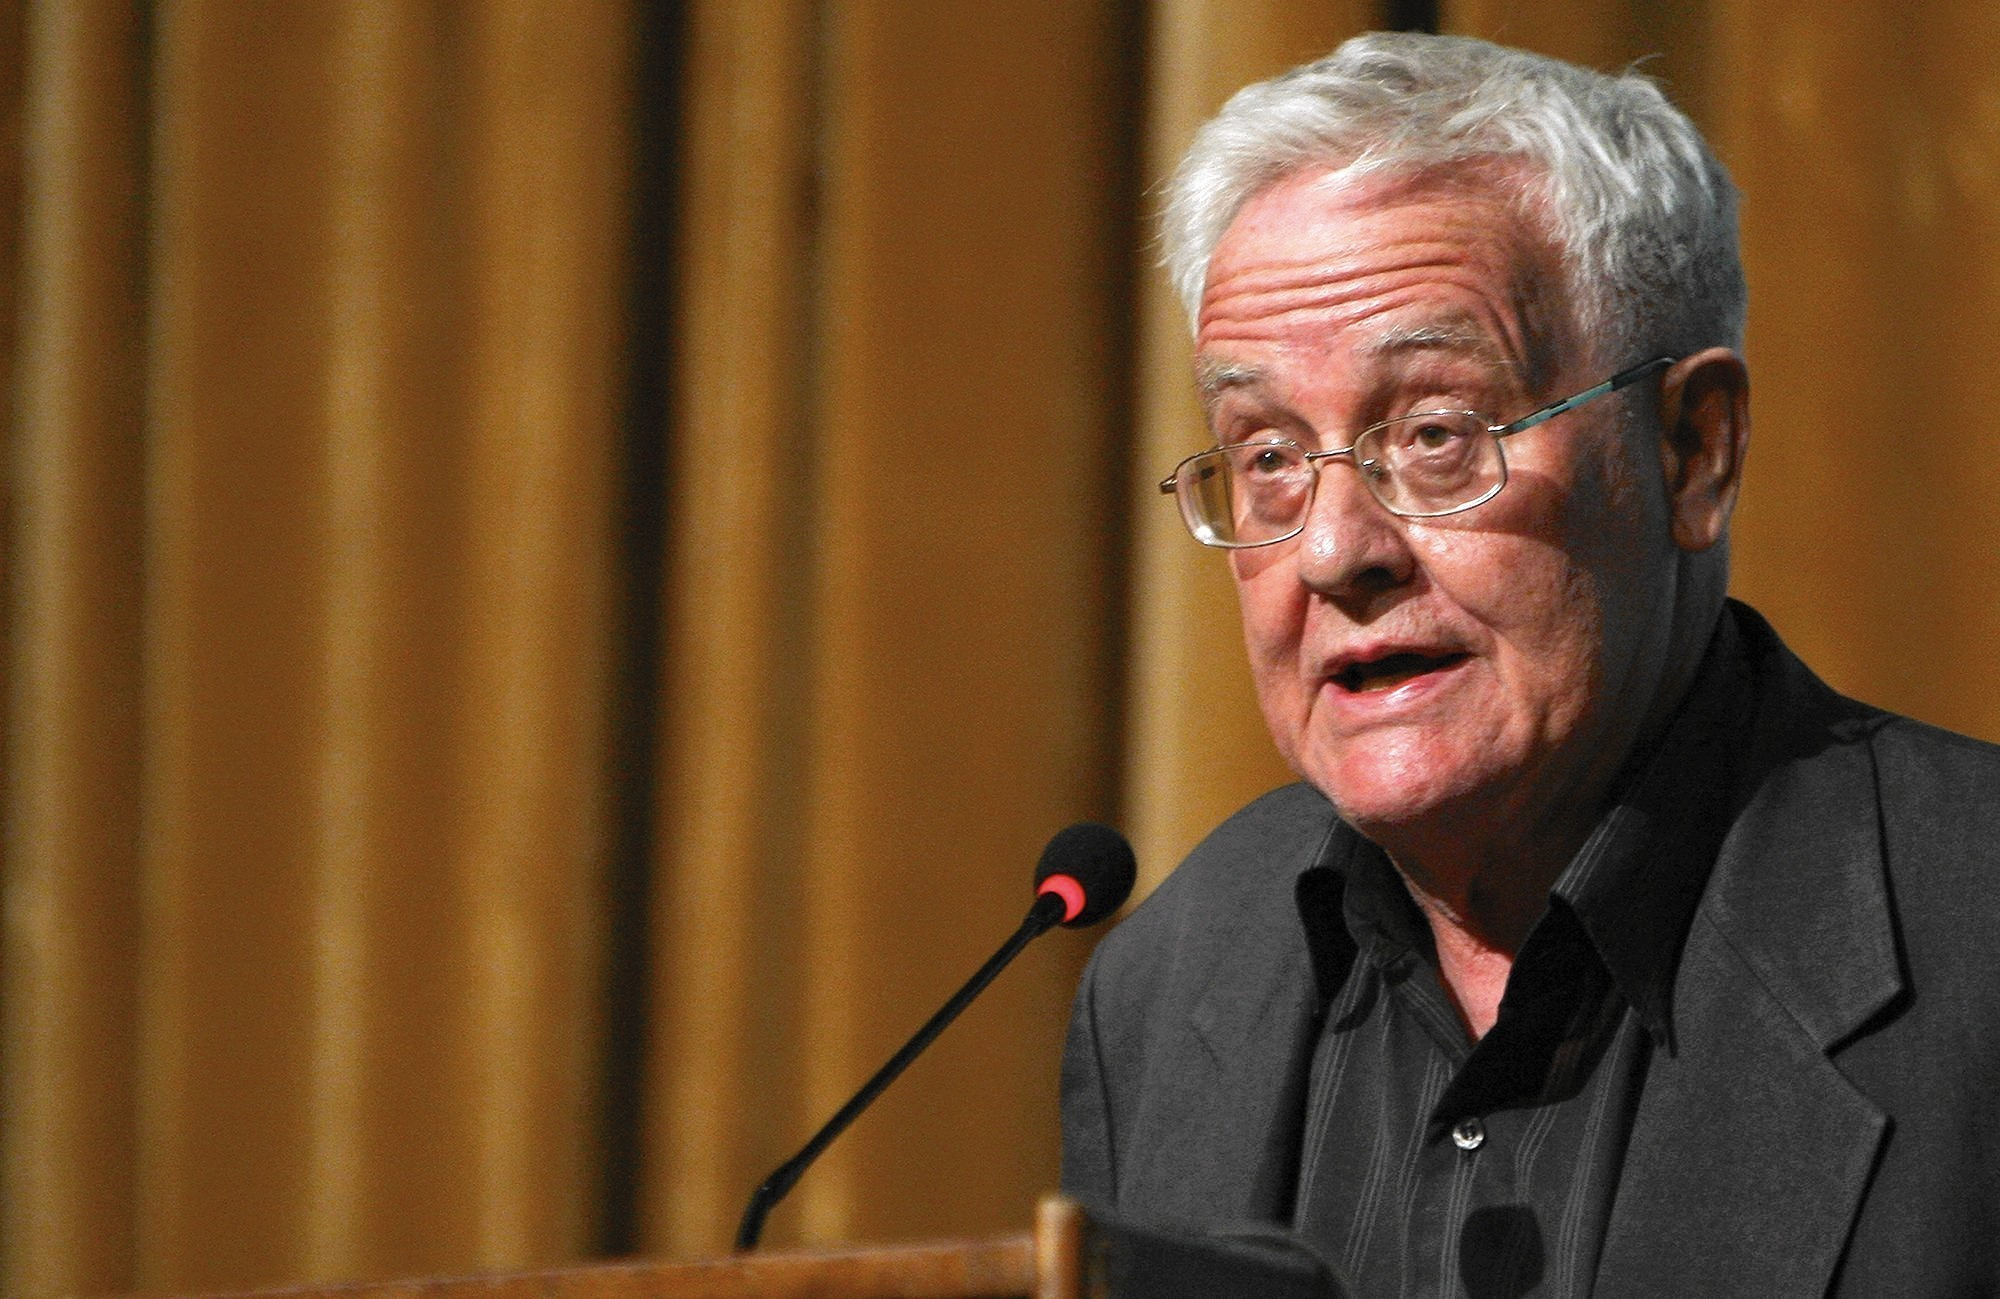 benedict anderson Benedict anderson, in full benedict richard o'gorman anderson, (born august 26, 1936, kunming, china—died december 12/13, 2015, batu, indonesia), irish political scientist, best known for his influential work on the origins of nationalism.